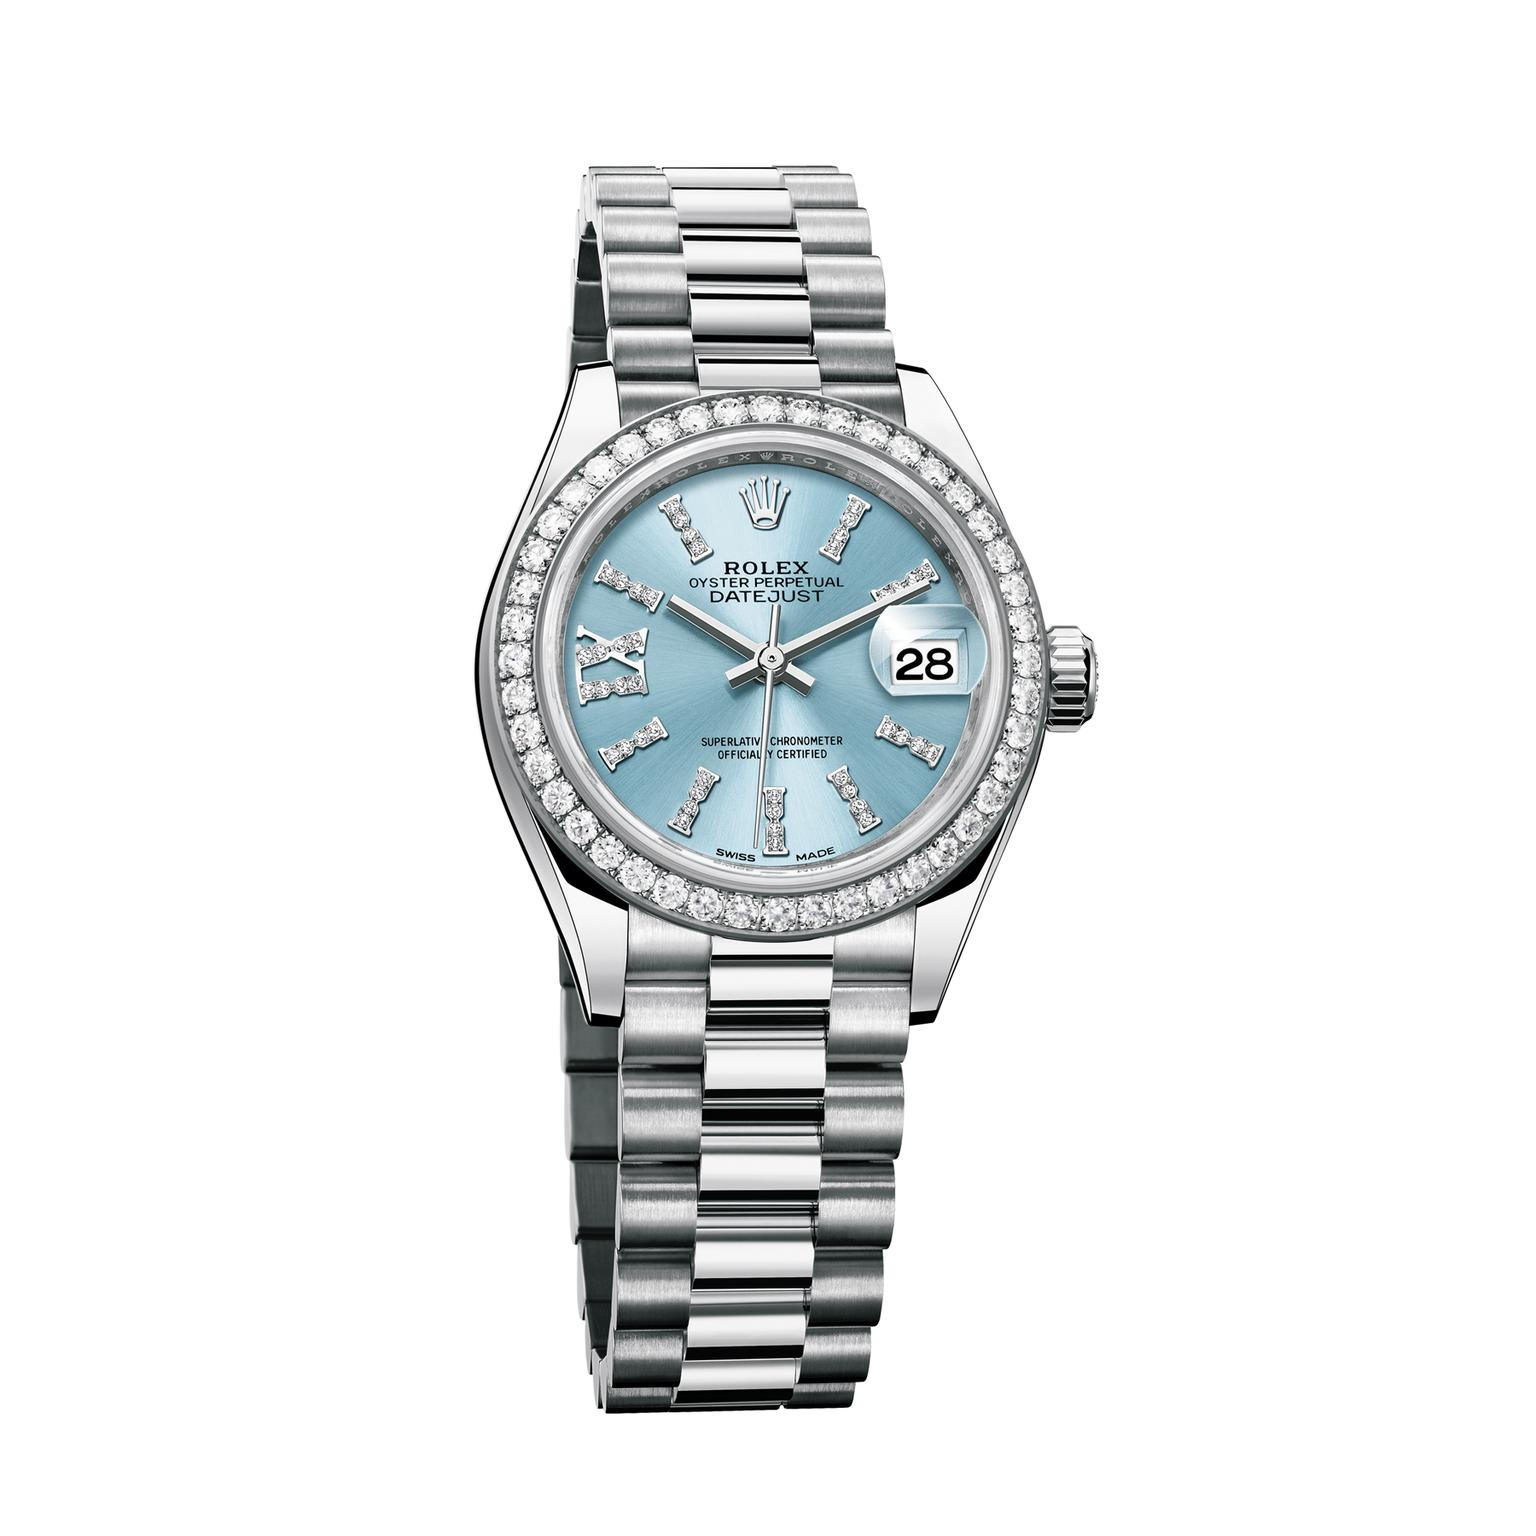 Rolex Lady-Datejust watch 28mm in platinum